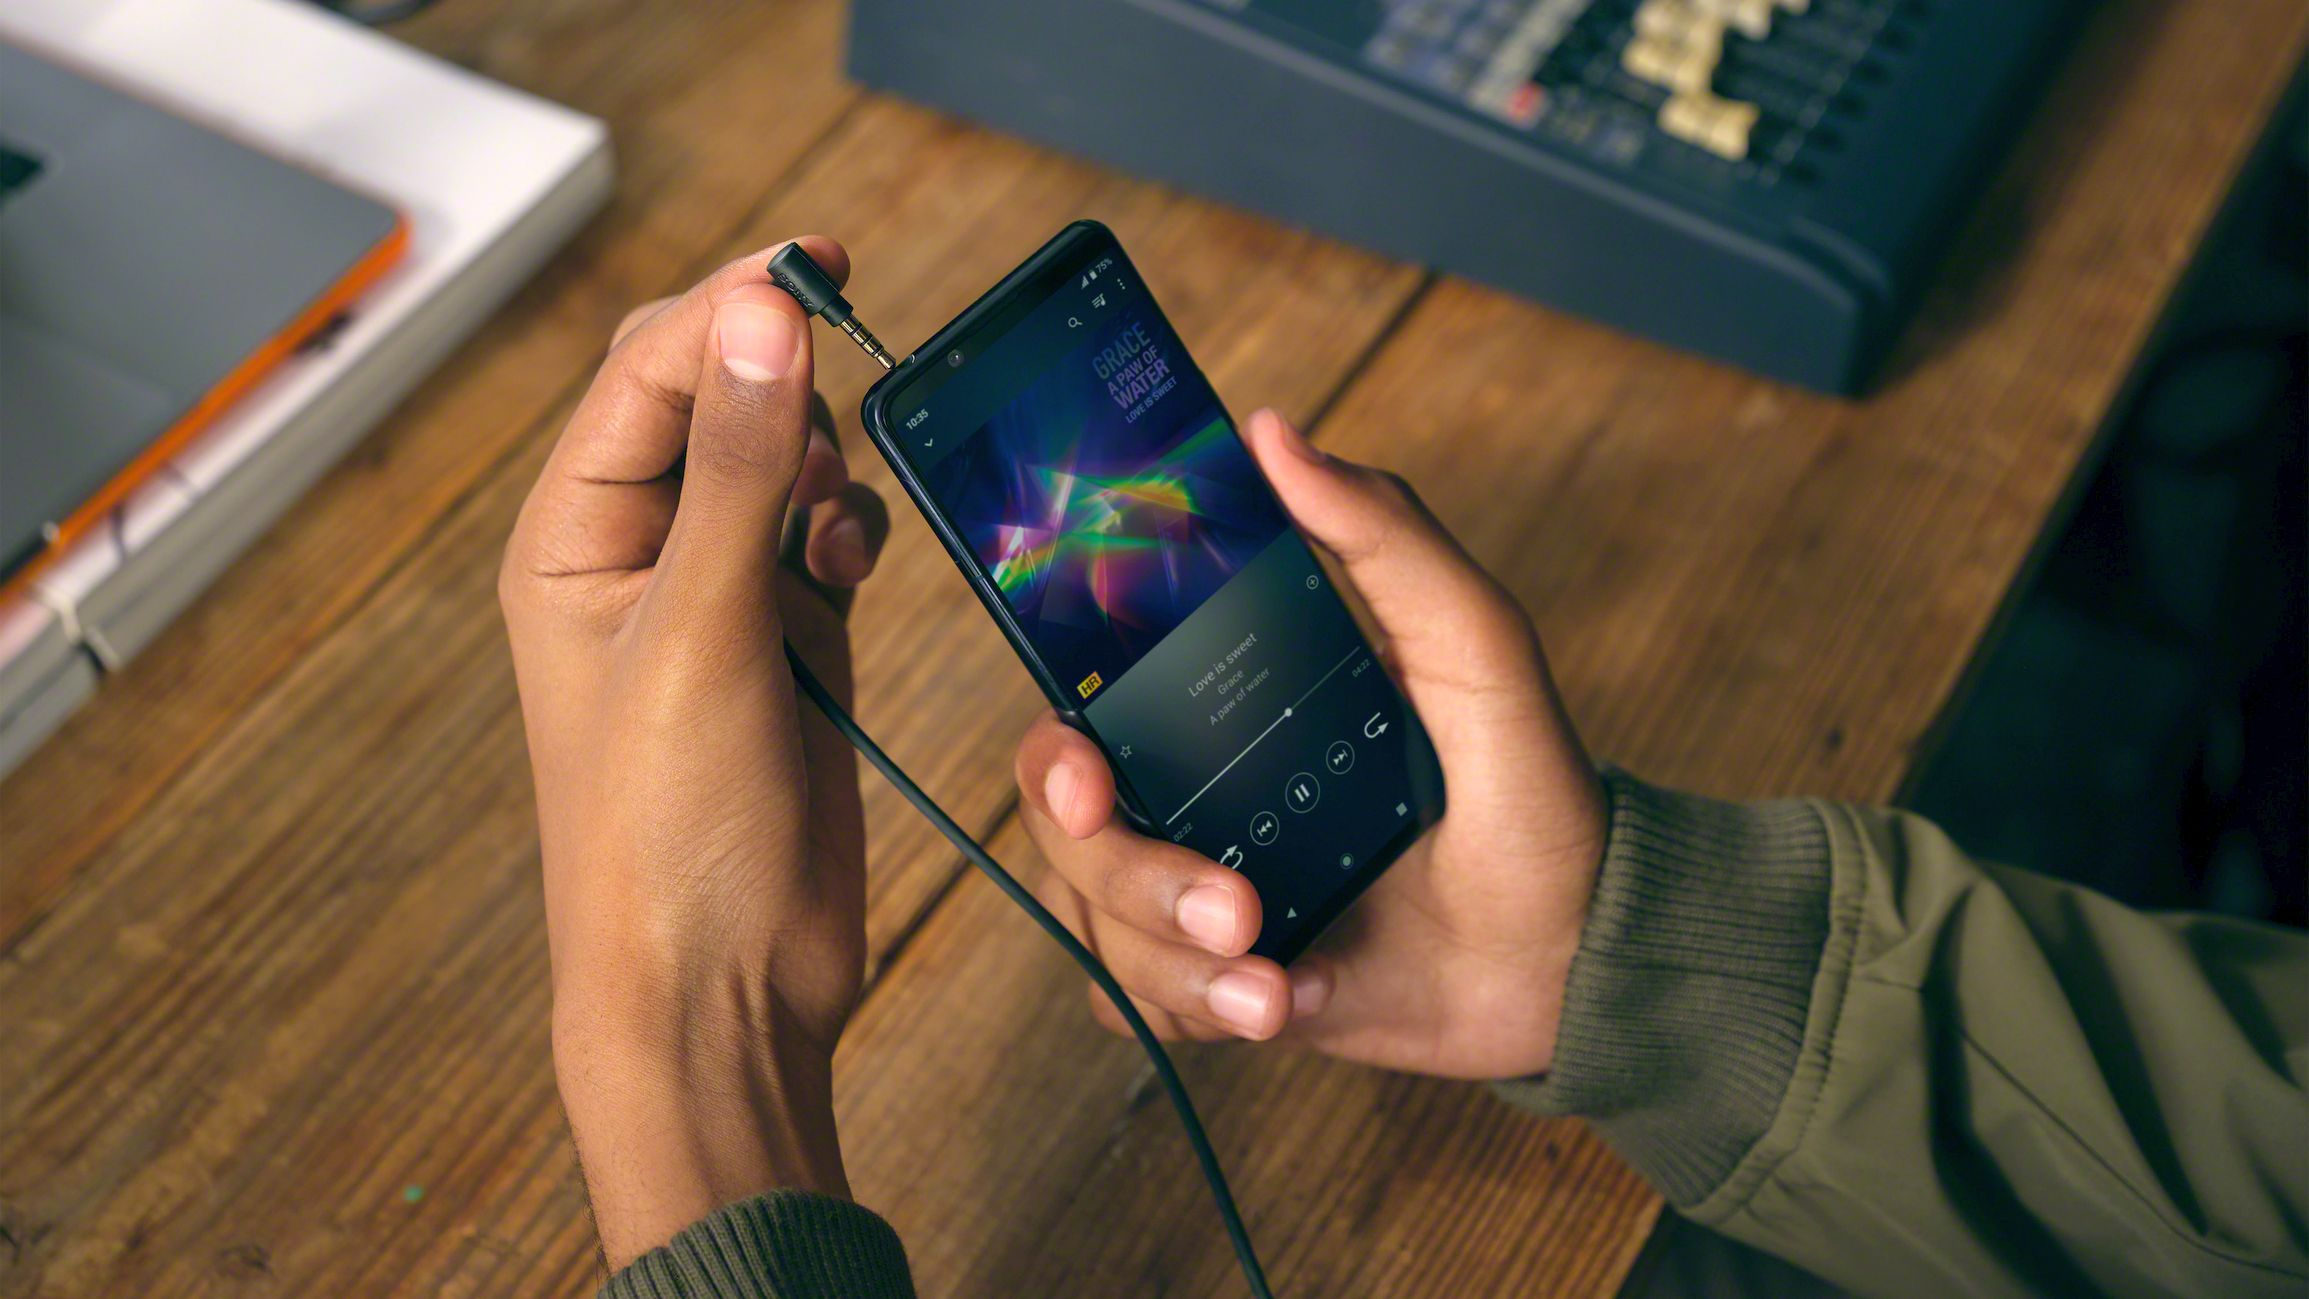 Sony Xperia 5 II goes official with 120 Hz OLED display and other tweaks that will appeal compact flagship fans